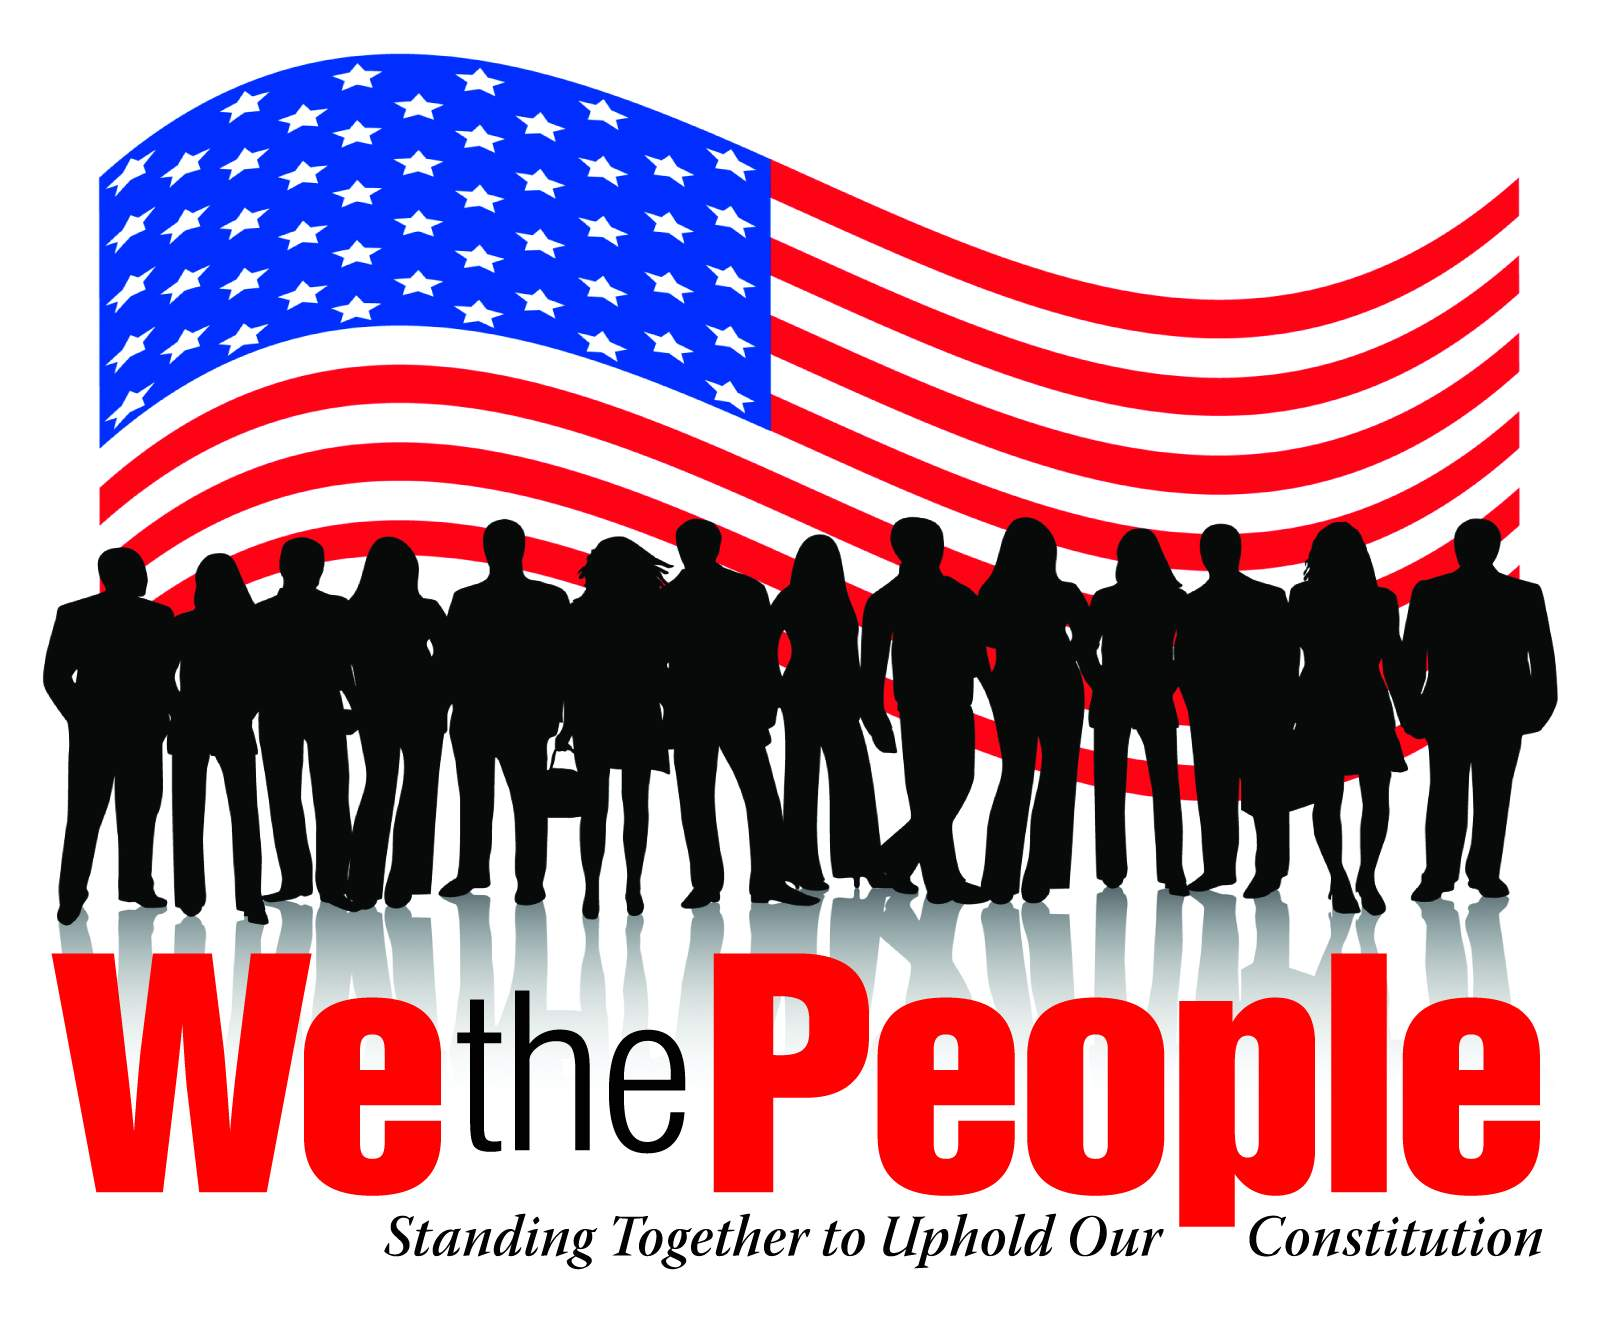 http://blogsensebybarb.files.wordpress.com/2012/02/letterheadwethepeople_logo01.jpg